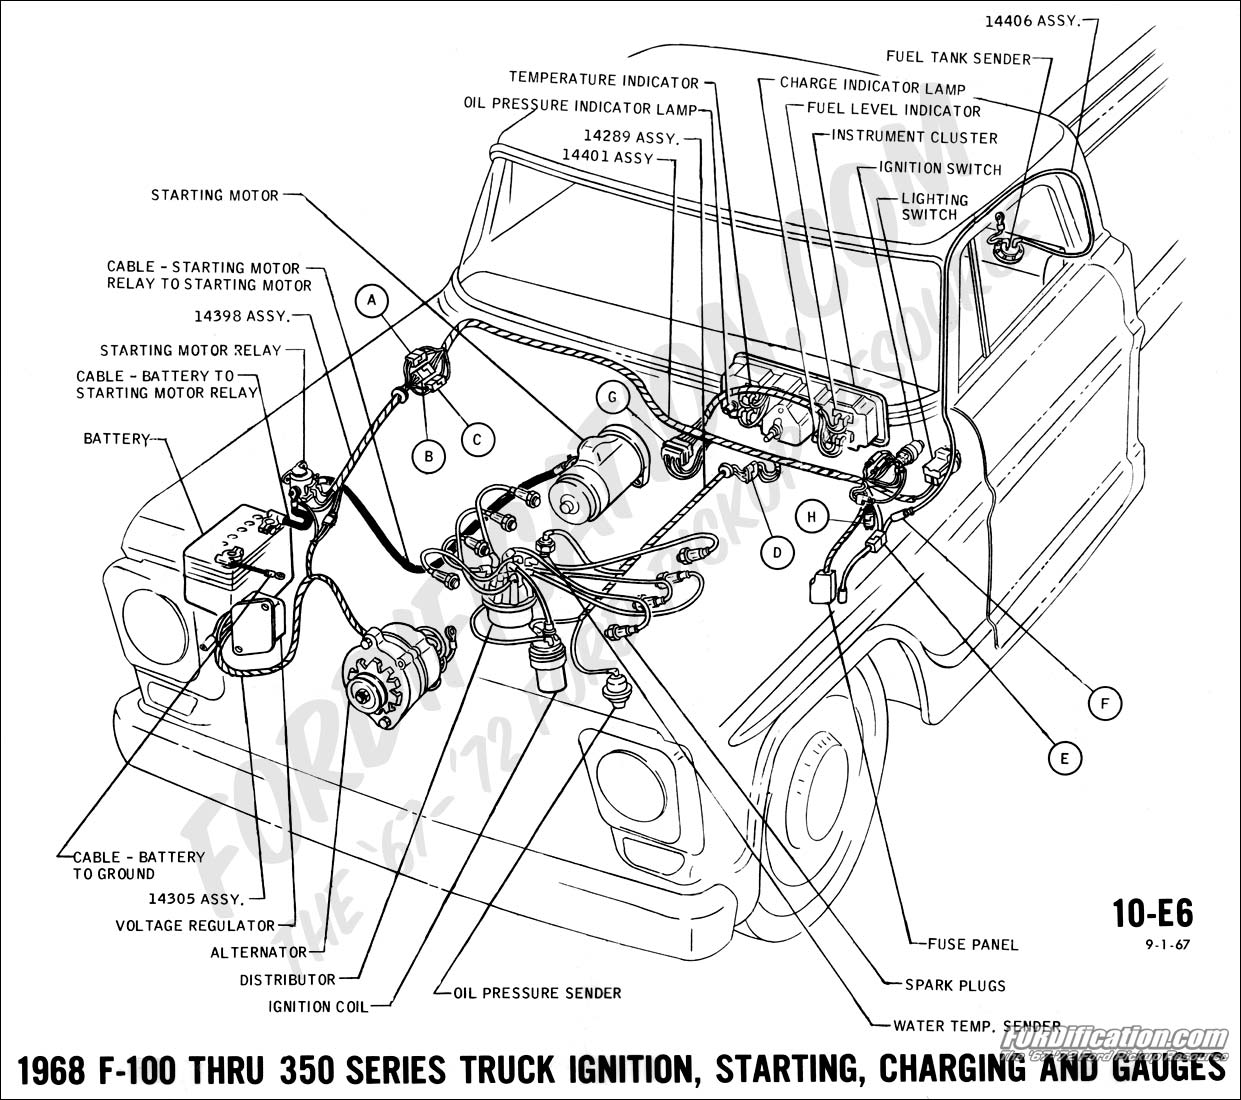 86 Ford F 150 Ignition Switch Wiring Golden Schematic Popular Post 4 Way Diagram Pioneer Avh P4000dvd 1968 100 Thru 350 Starting Charging And Gauges